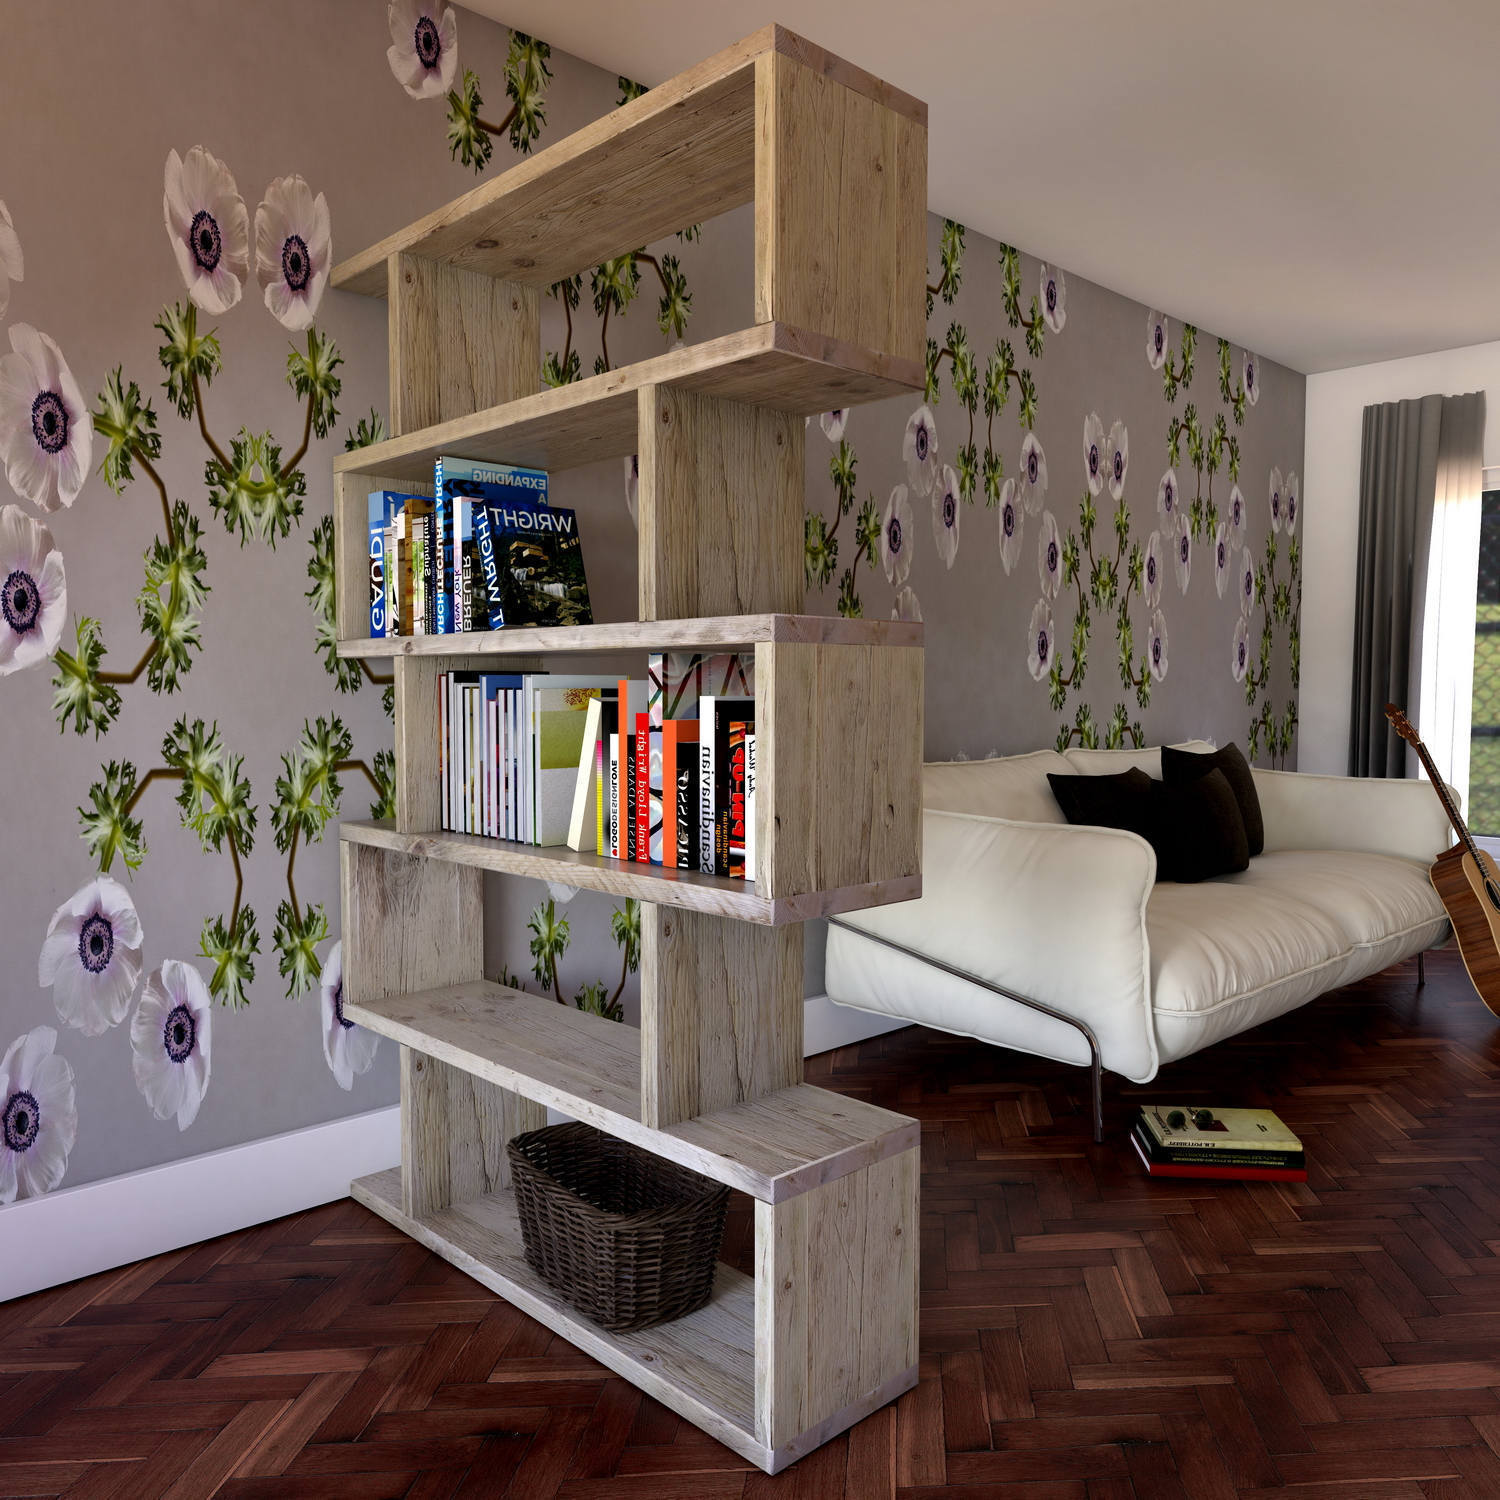 Wooden Room Divider And/Or Wall Shelving Wooden room